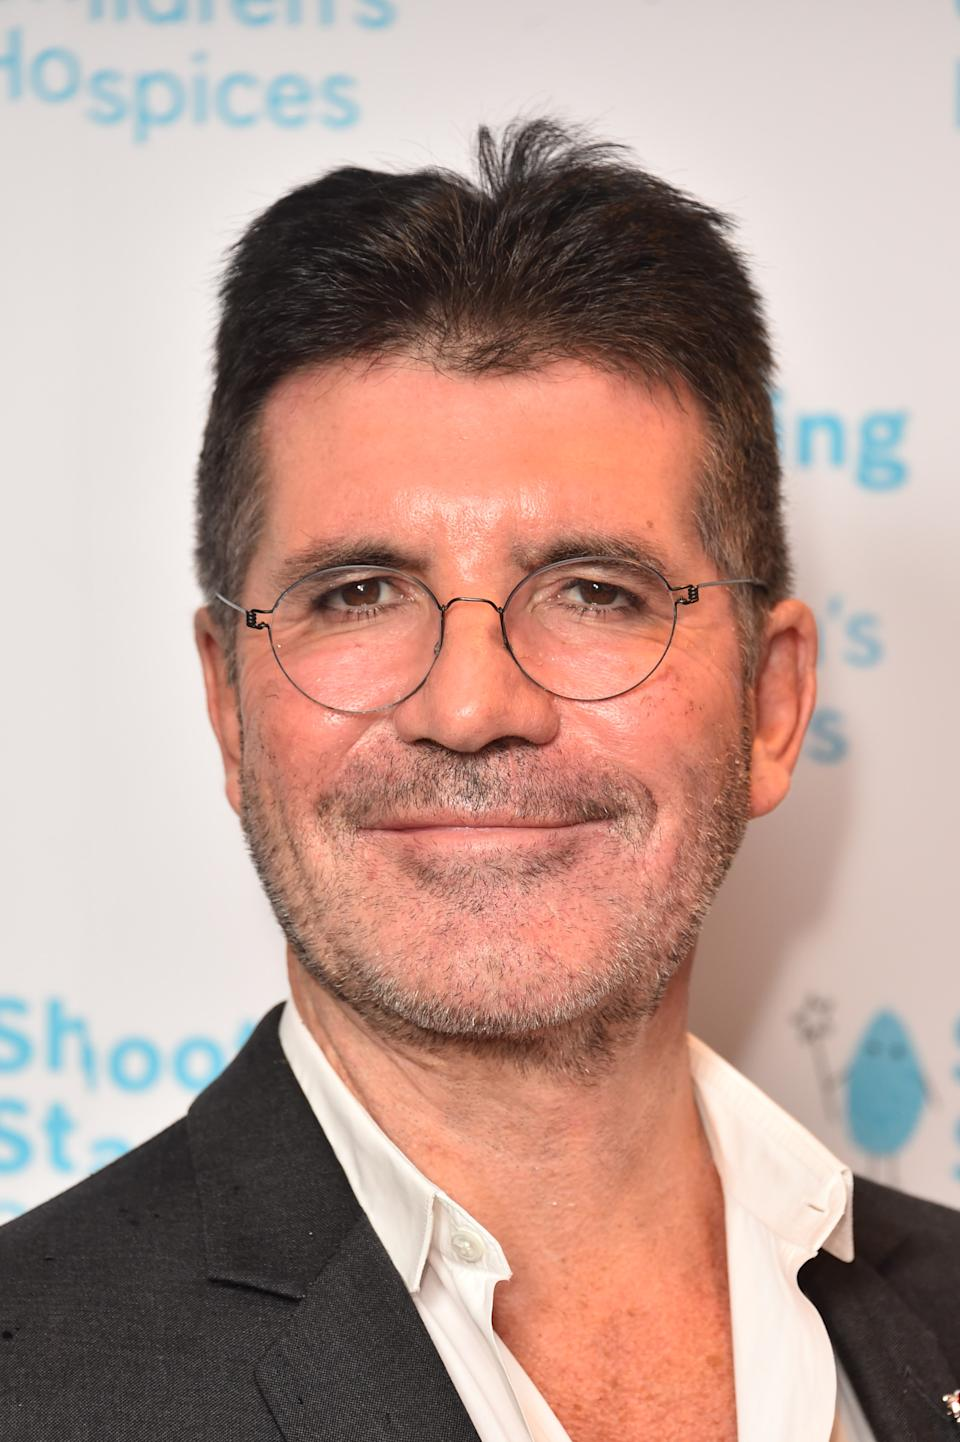 Simon Cowell attending the Shooting Star Ball in aid of Shooting Star Children's Hospices, at the Royal Lancaster Hotel in London. (Photo by Matt Crossick/PA Images via Getty Images)